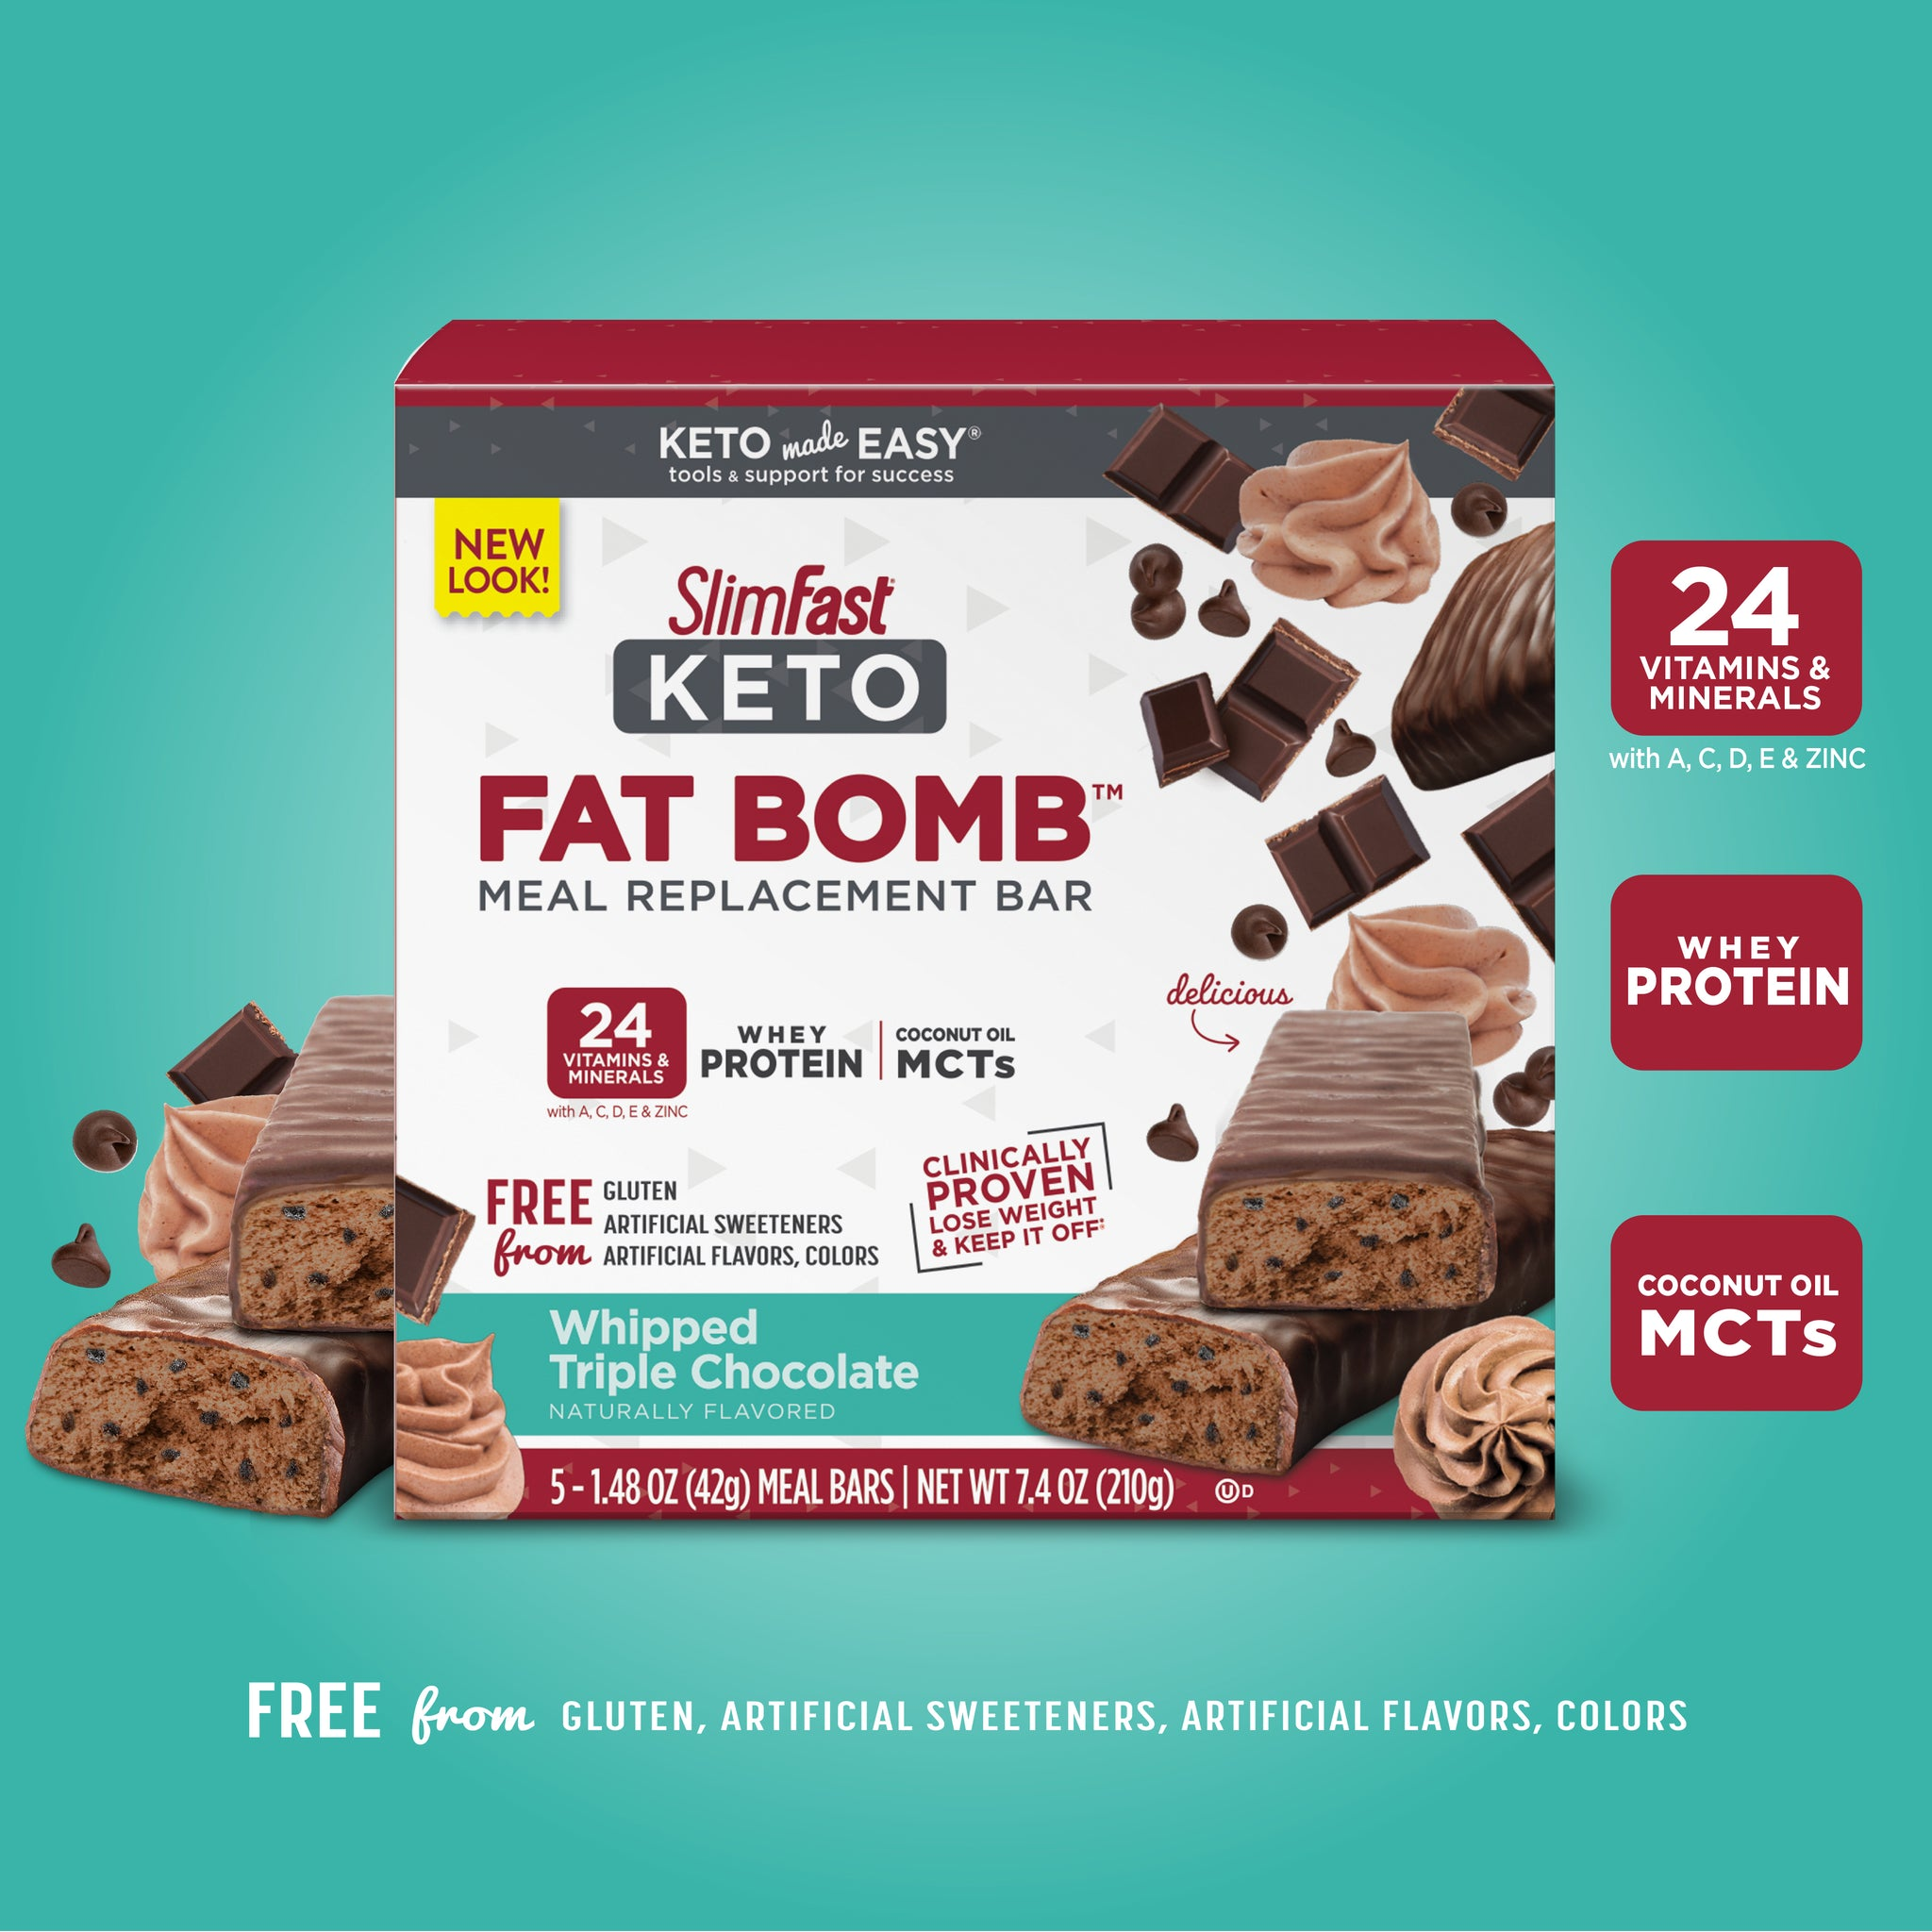 Whipped Peanut Butter Chocolate SlimFast Keto Fat Bomb Meal Replacement Bars